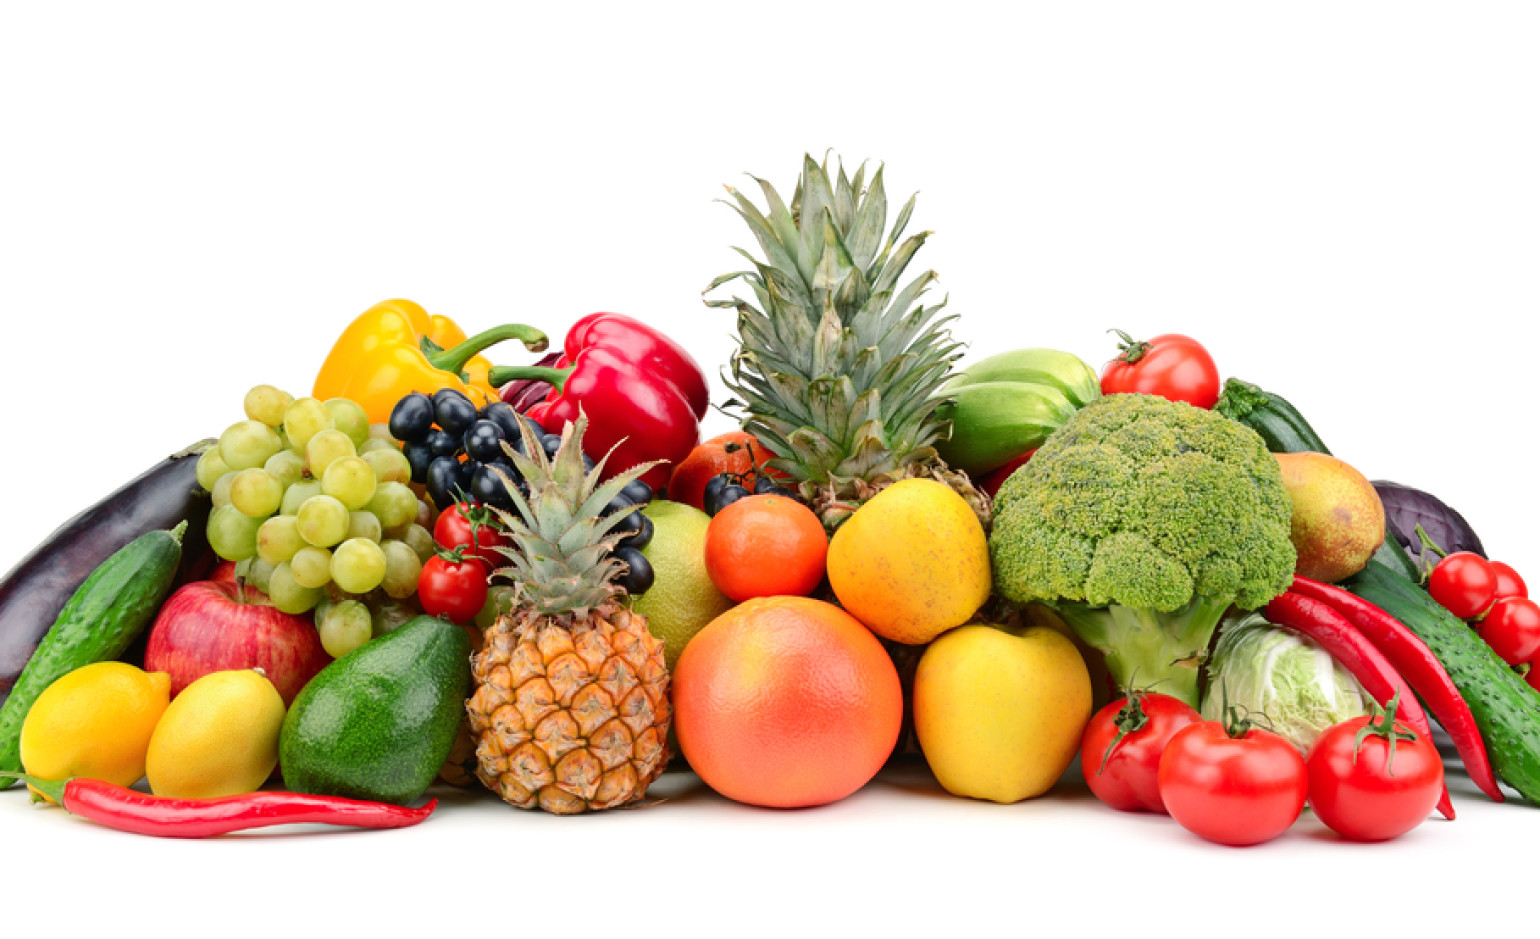 Fruits and vegetables dr elaine fruits and vegetables thecheapjerseys Images